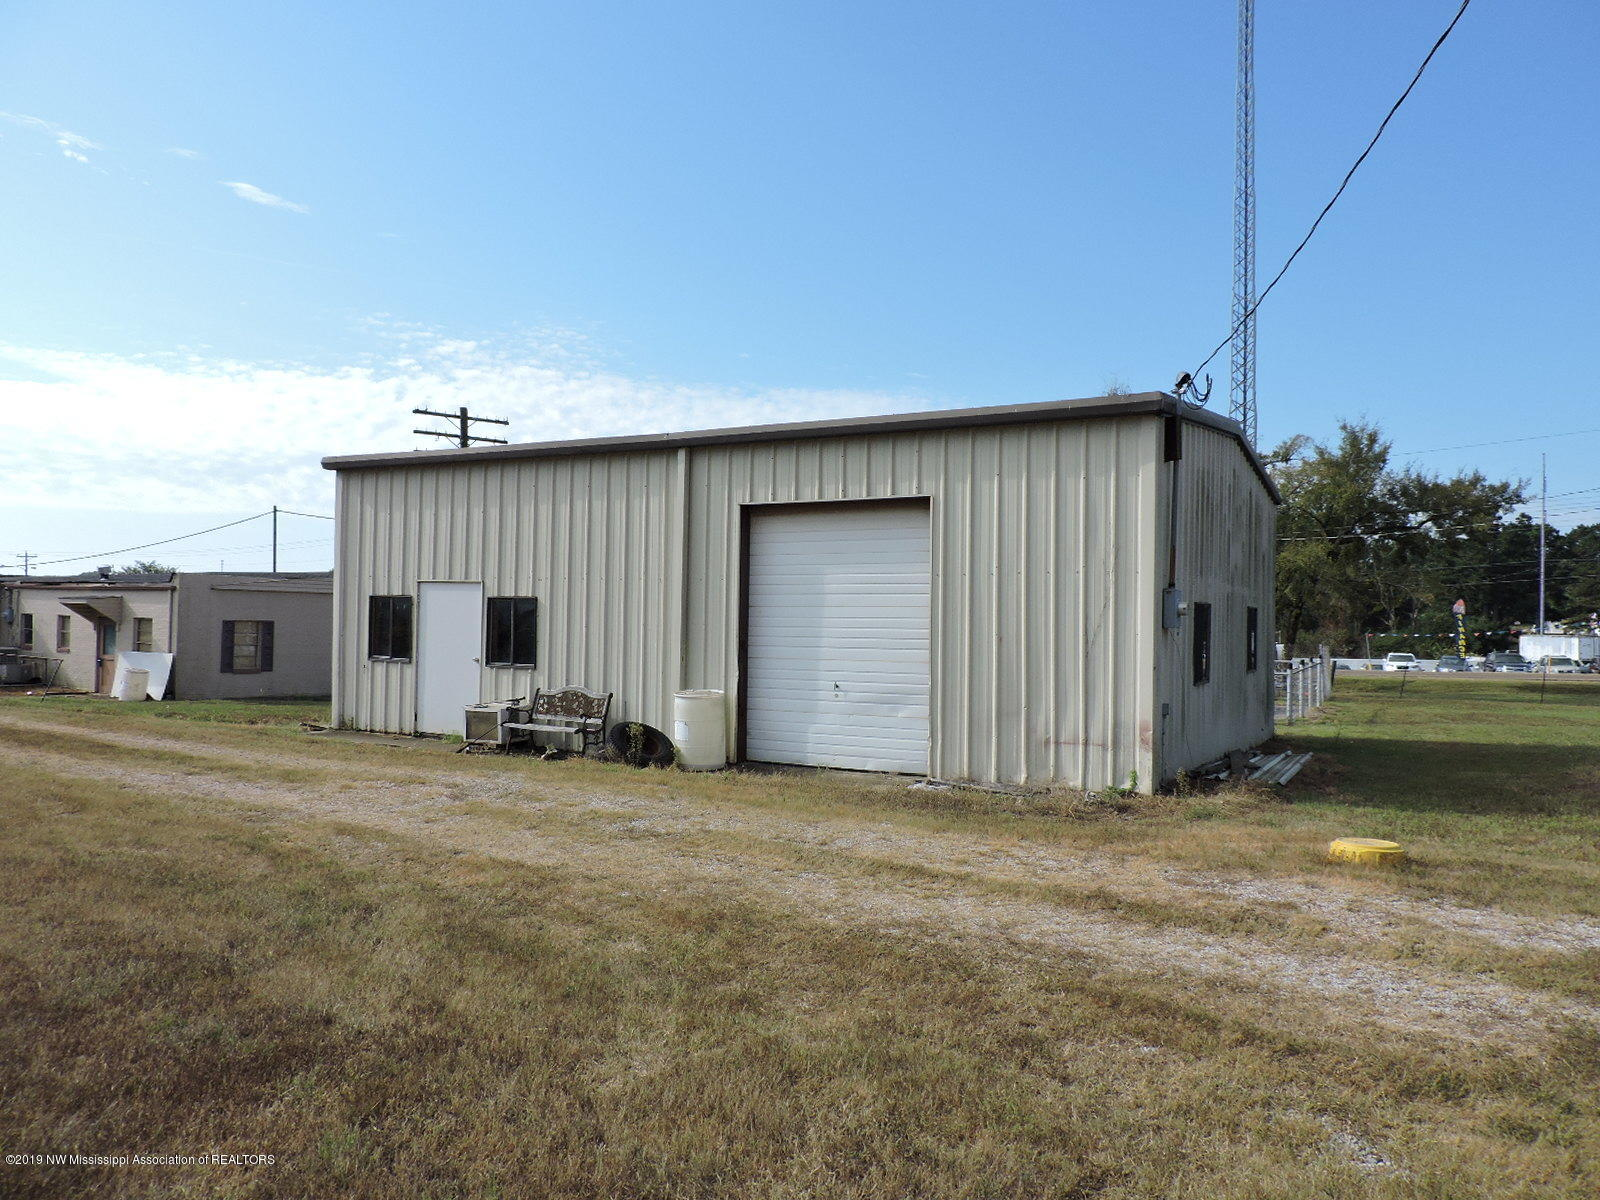 8602 Highway 178, Marshall, Mississippi 38611, ,Commercial,For Sale,Highway 178,325376